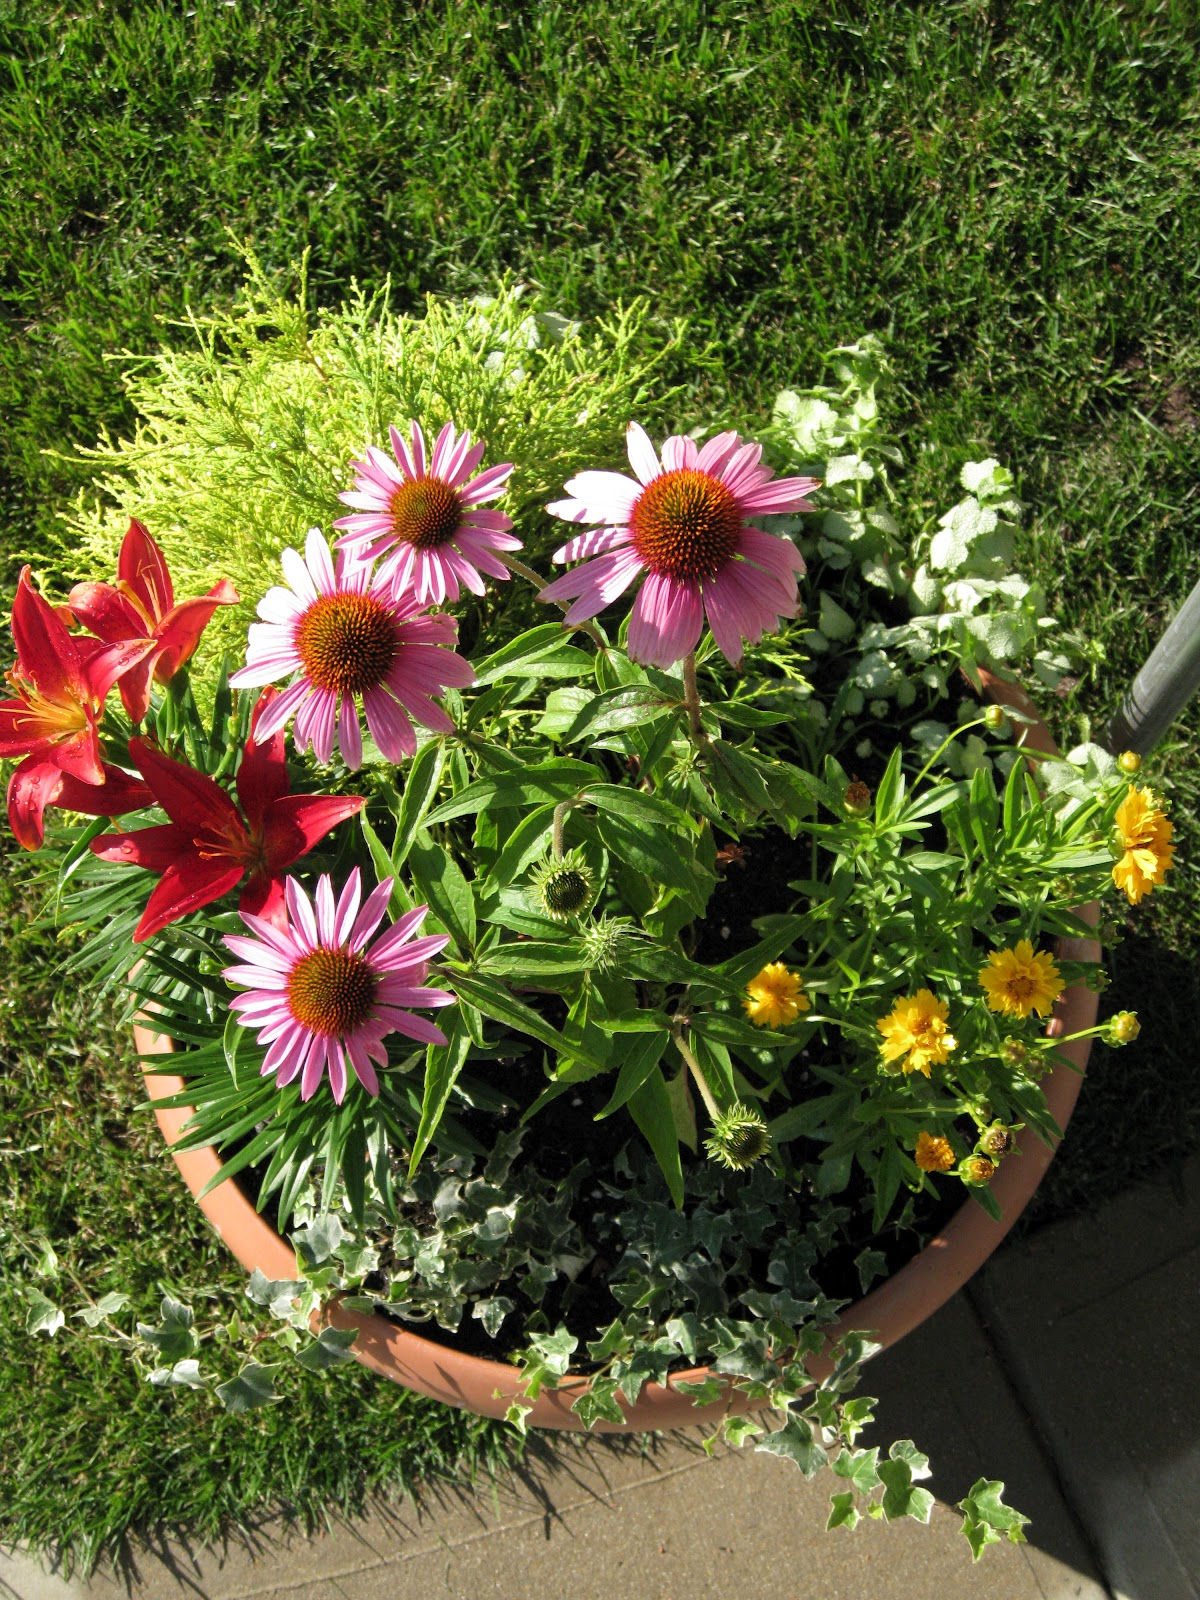 Dr. Dan's Garden Tips: Perennials In A Pot